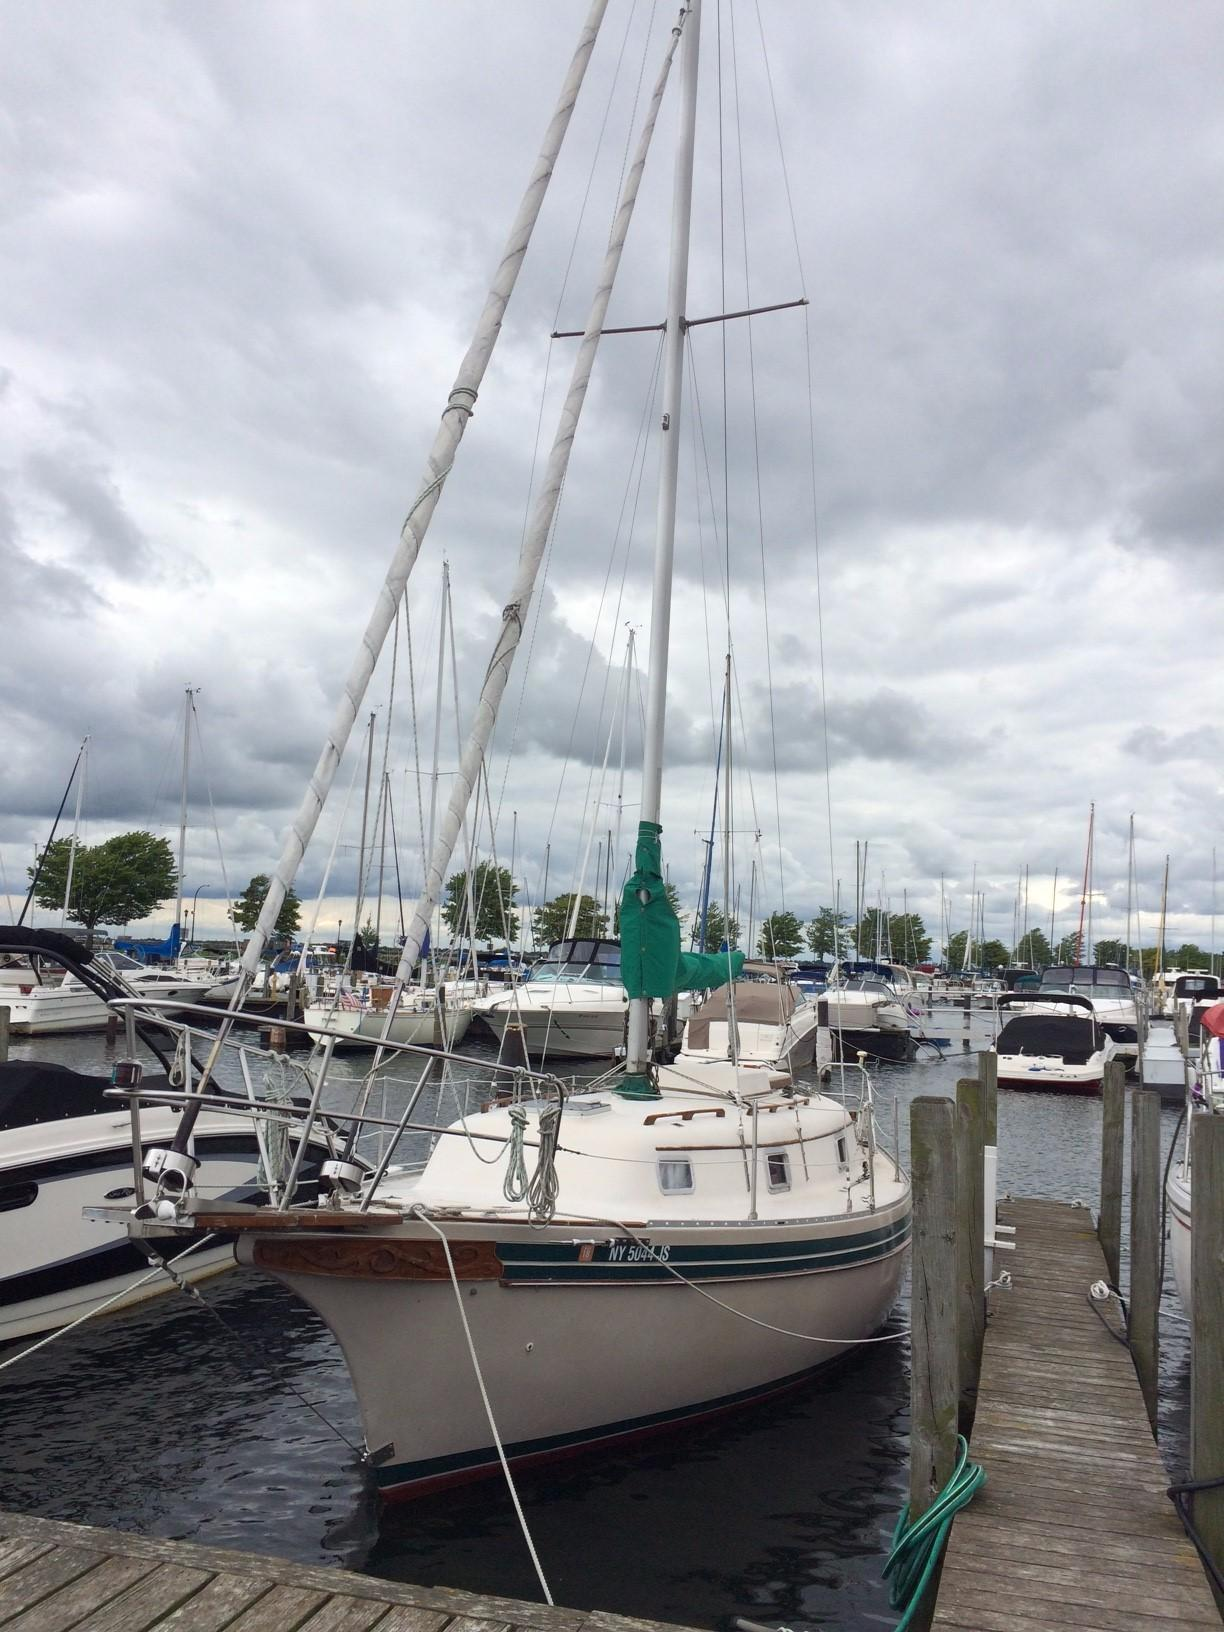 bayfield single personals Enjoy a magical two night stay in bayfield with all the old rittenhouse inn amenities plus the dreamcatcher afternoon sail for two people.